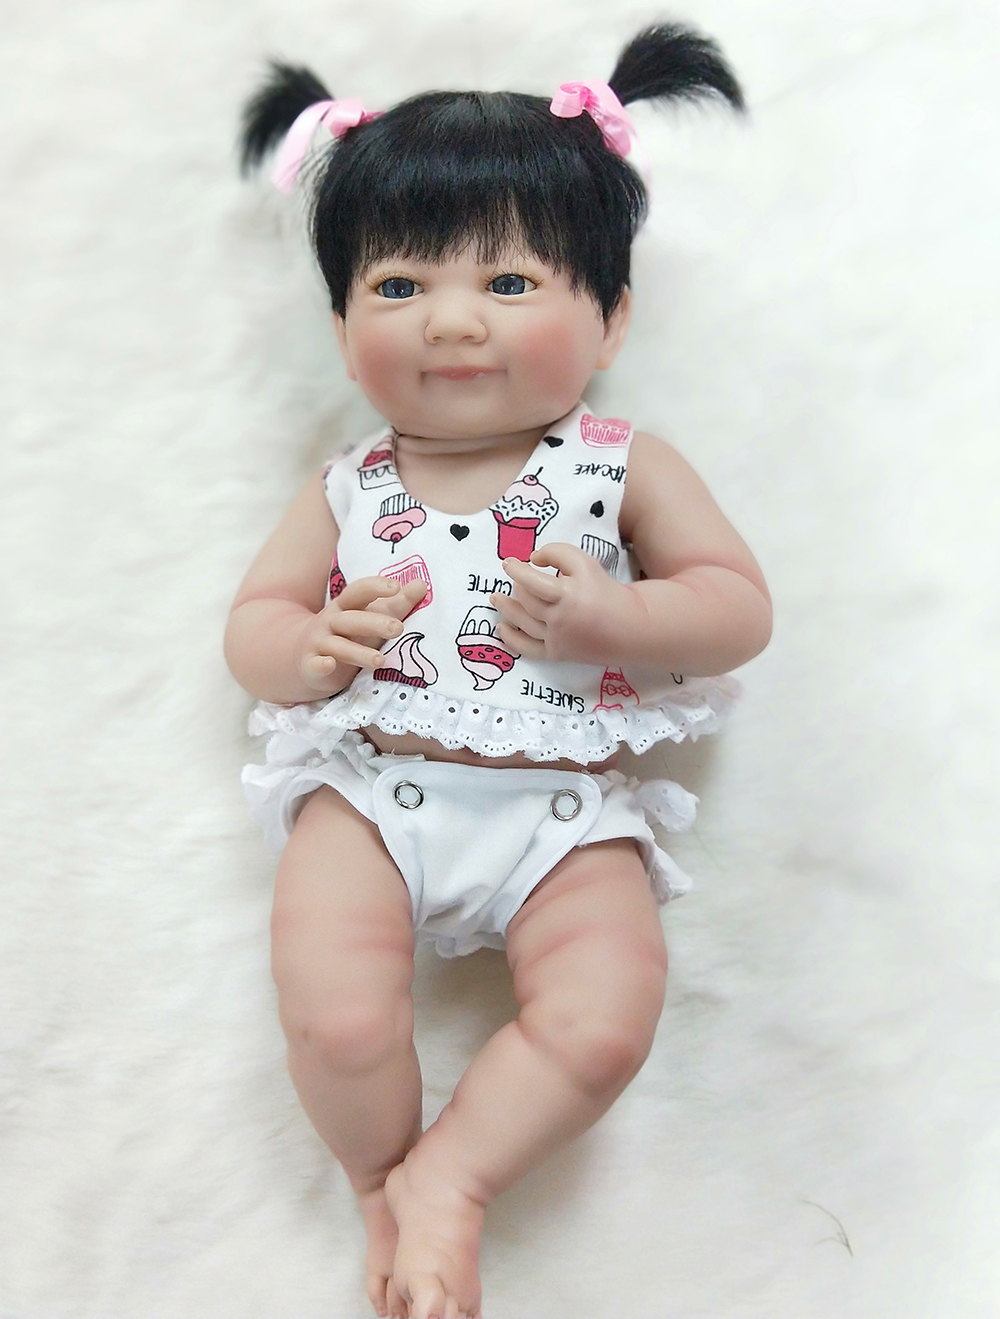 Pursue 14 Adorable Full Body Silicone Reborn Baby Girl Doll Toys for Children Girls House Play Bathable Washable Baby Girl Doll full house